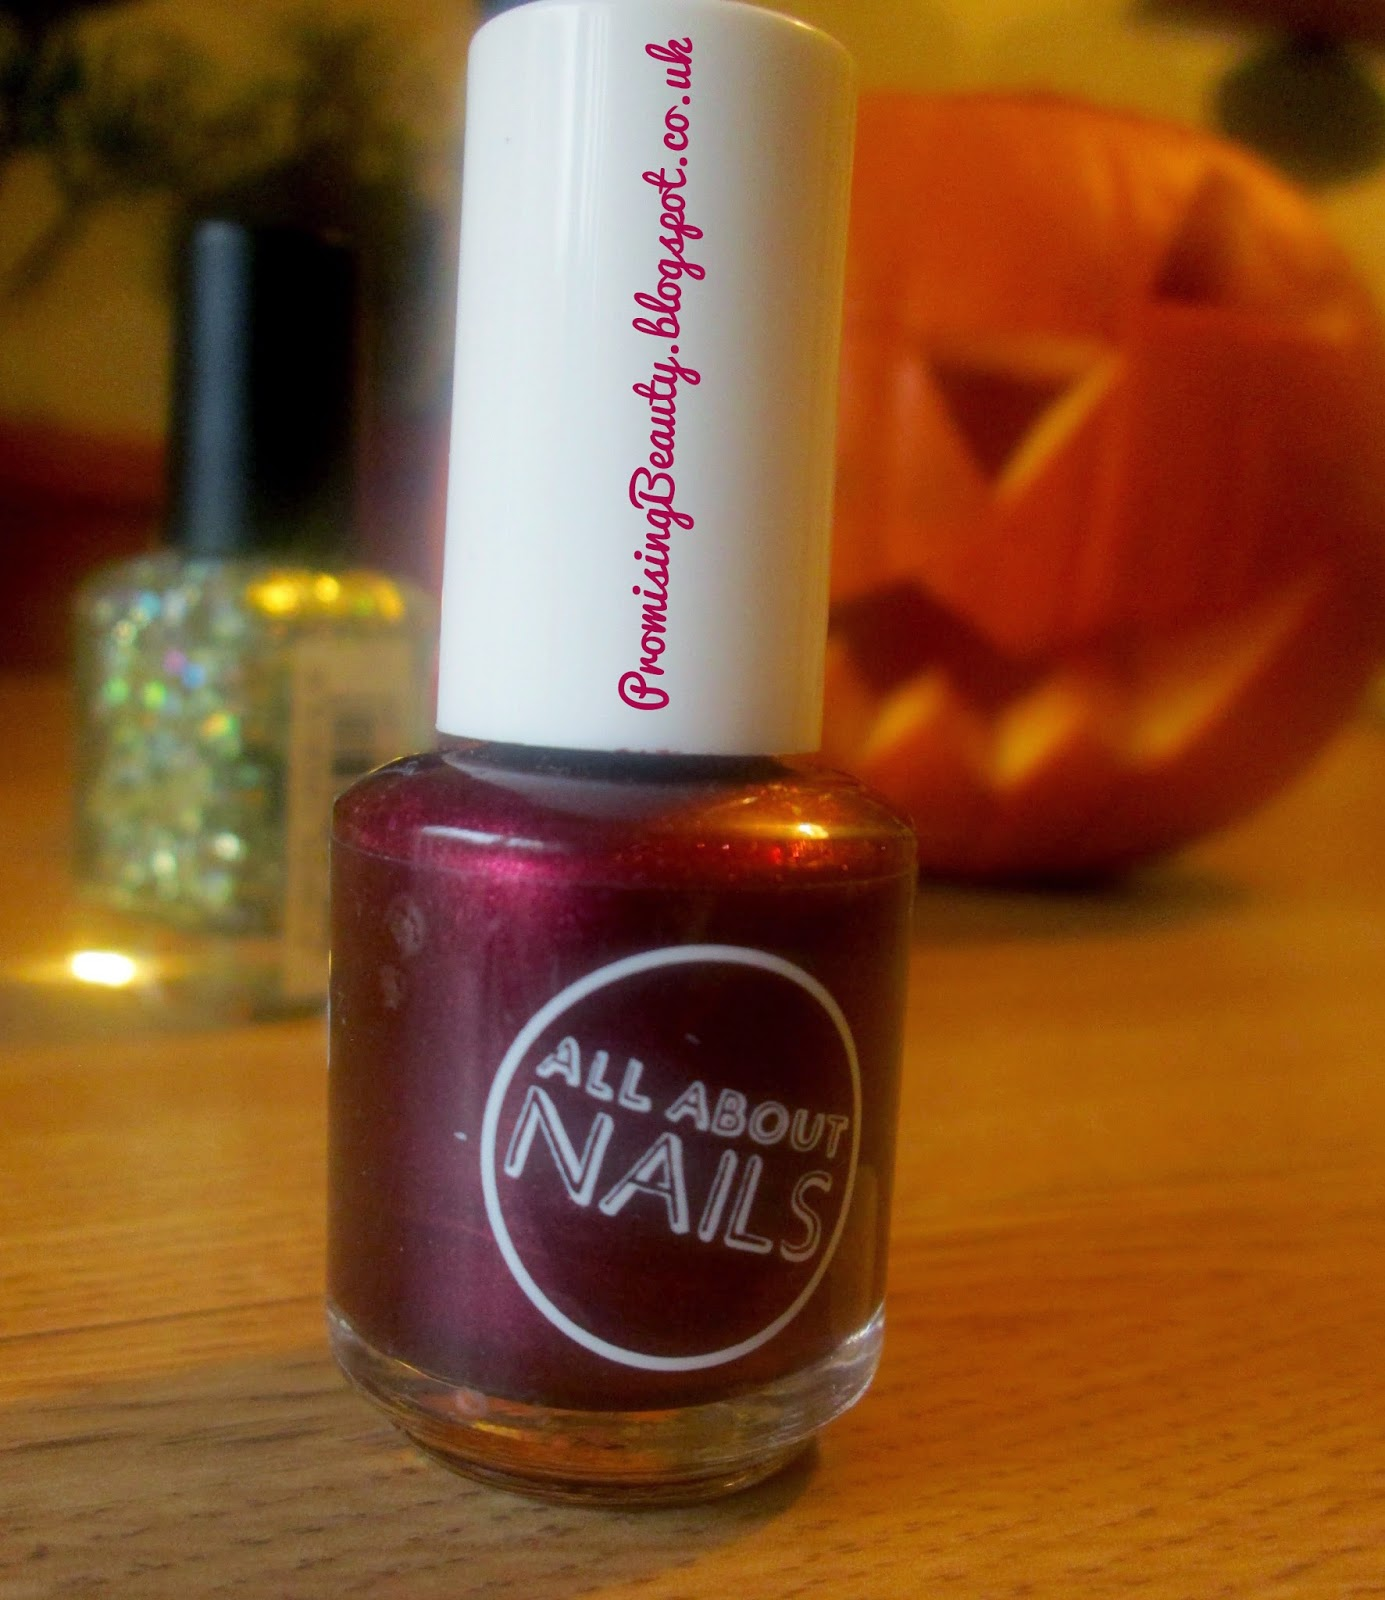 Burgundy, deep red nail polish and halloween pumpkin